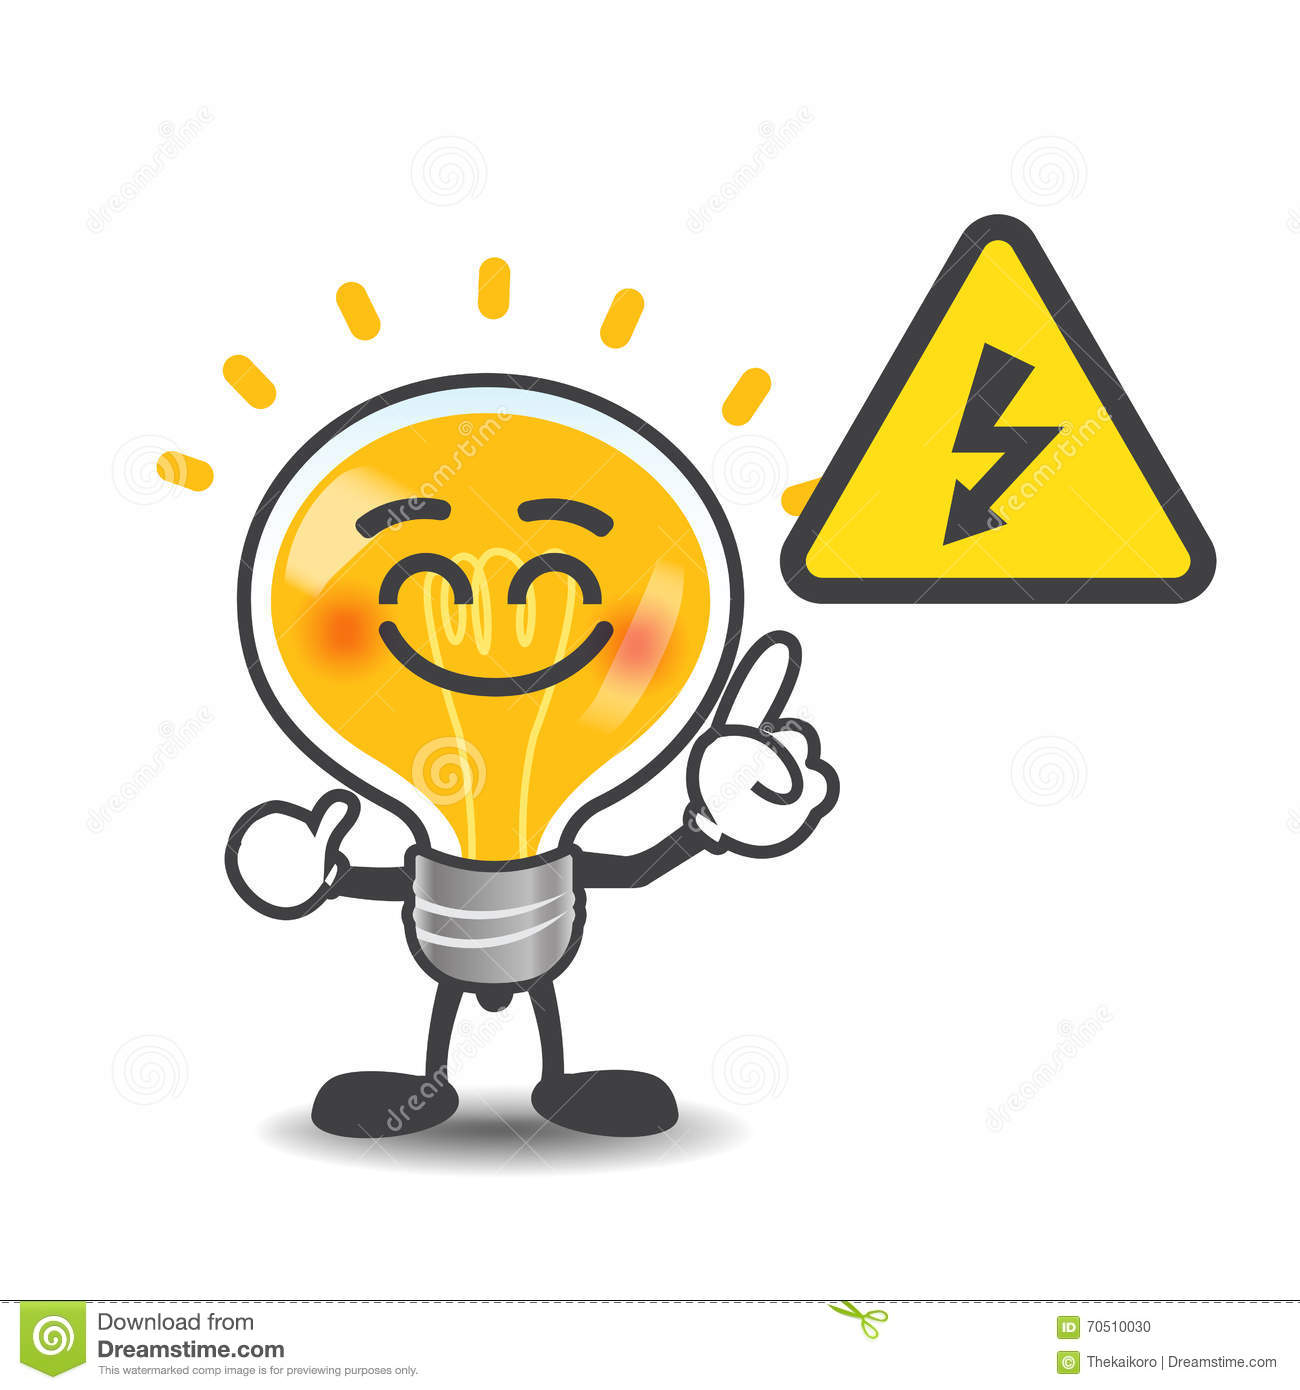 Bulb lamp cartoon pointing to electric power volt symbol isolate bulb lamp cartoon pointing to electric power volt symbol isolate biocorpaavc